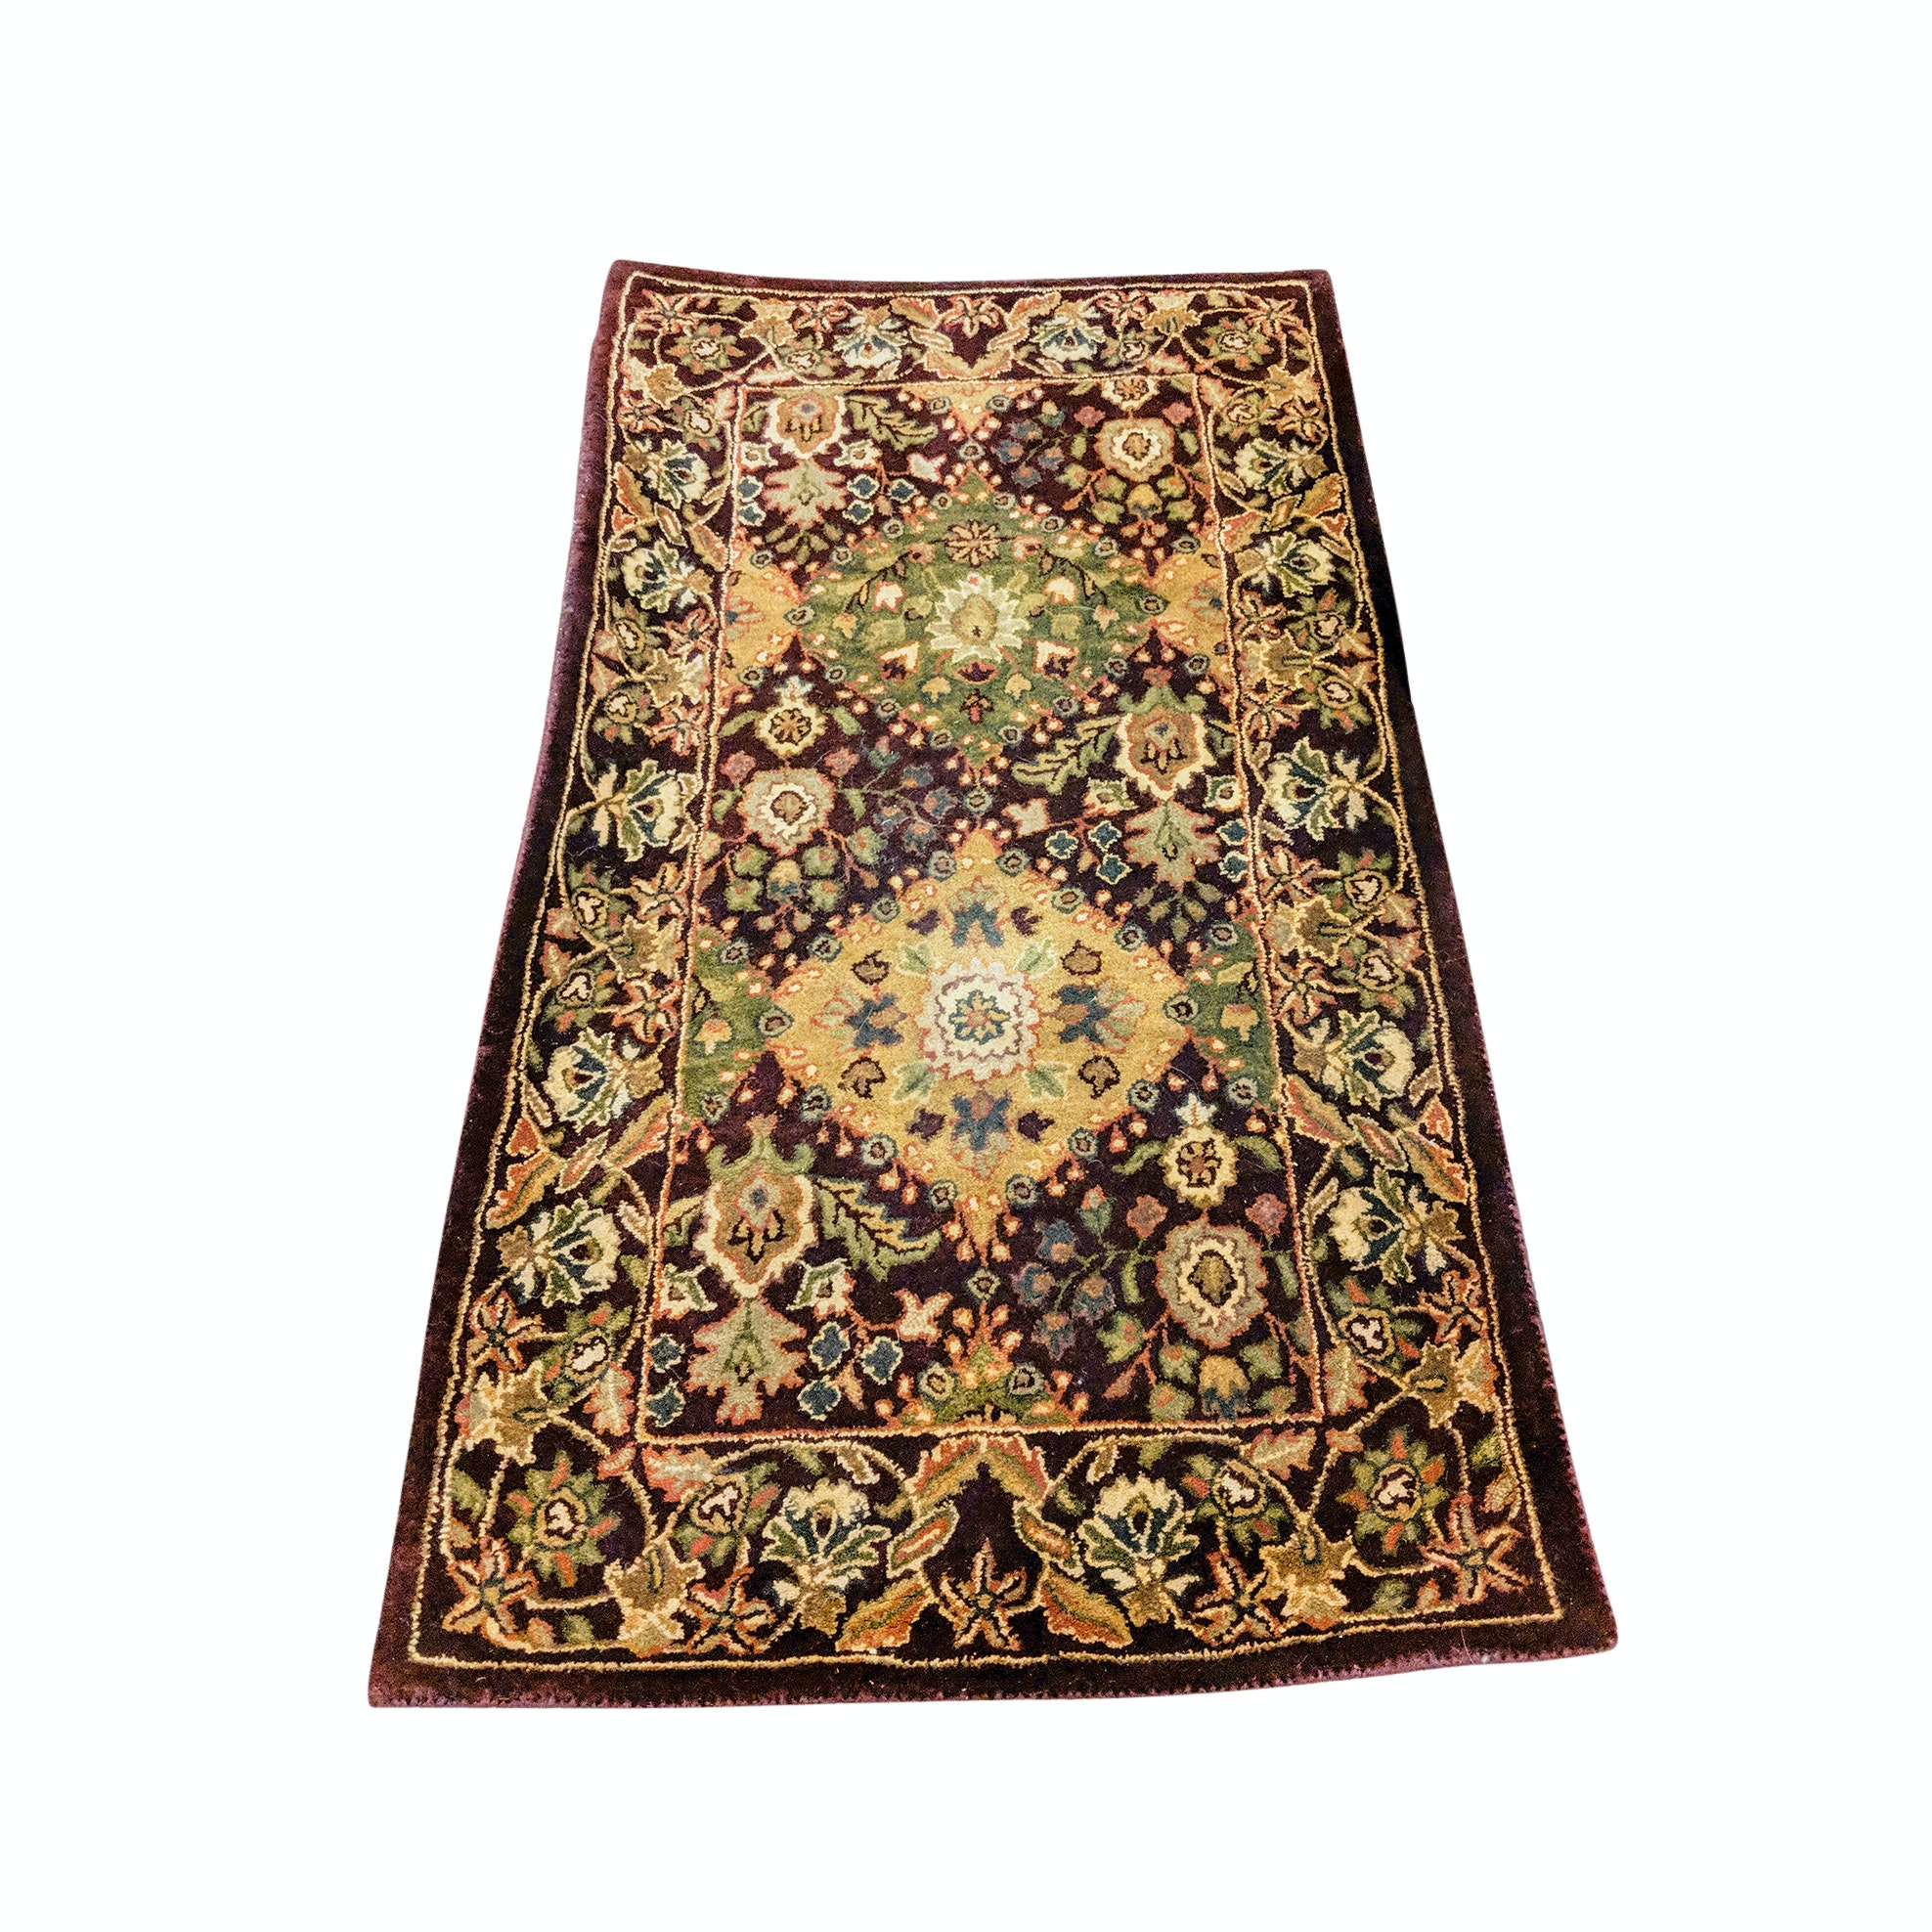 Persian Style Hand-Tufted Kaleen Area Rug by Safavieh